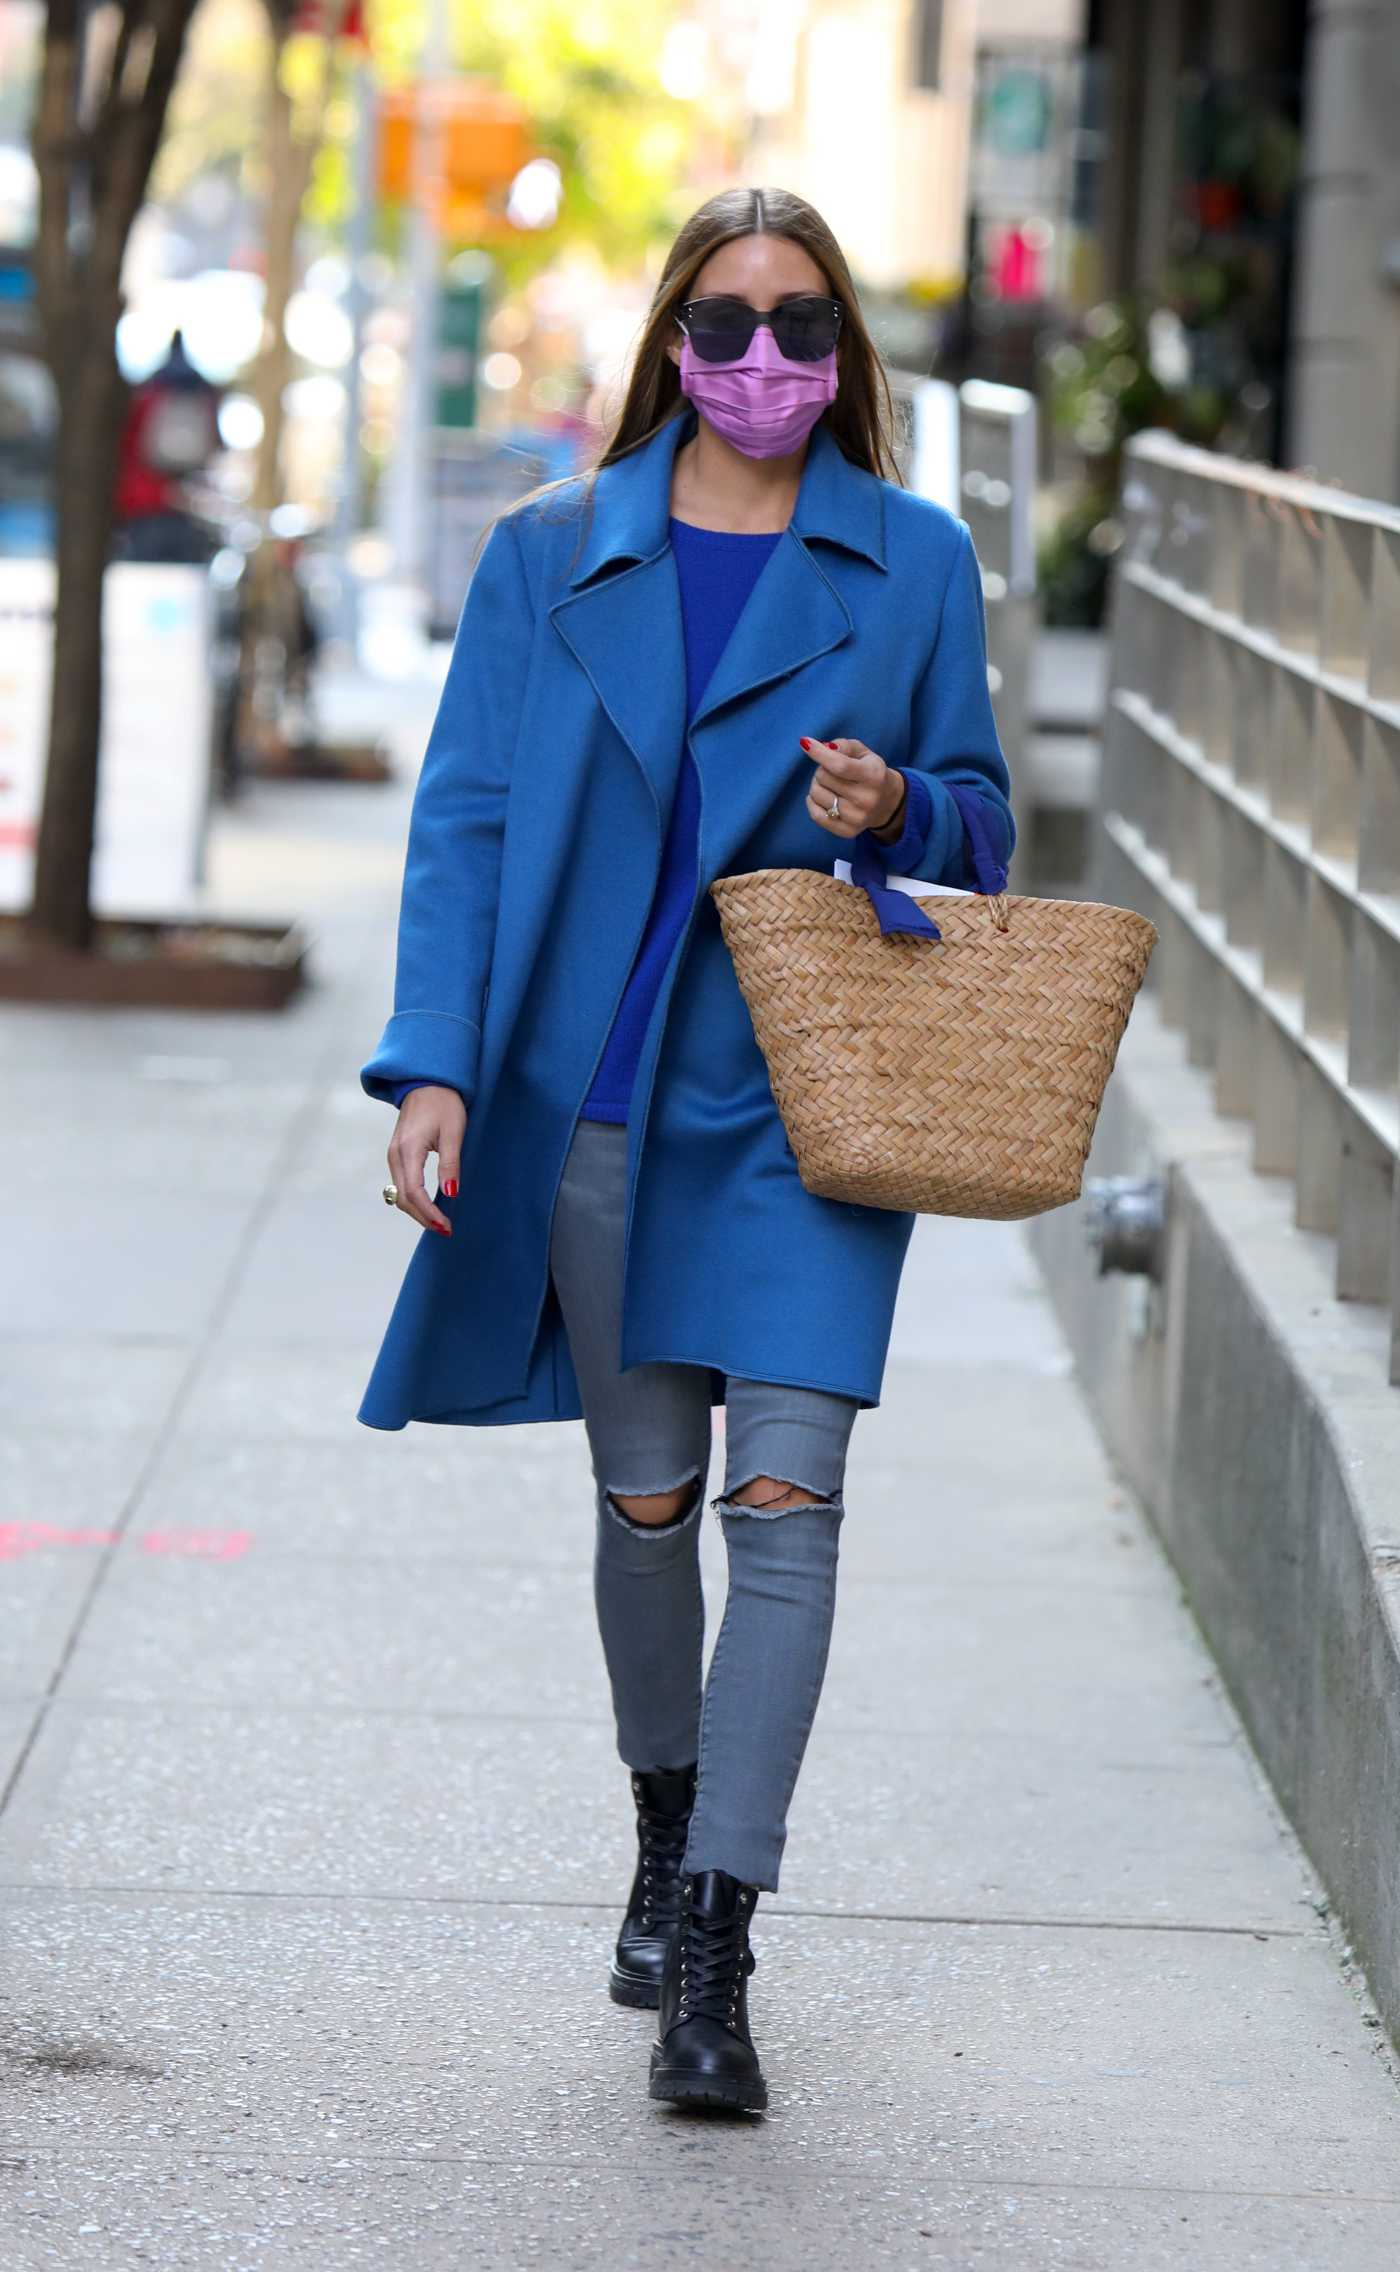 Olivia Palermo in a Blue Coat Was Seen Out in Brooklyn, NYC 09/21/2020